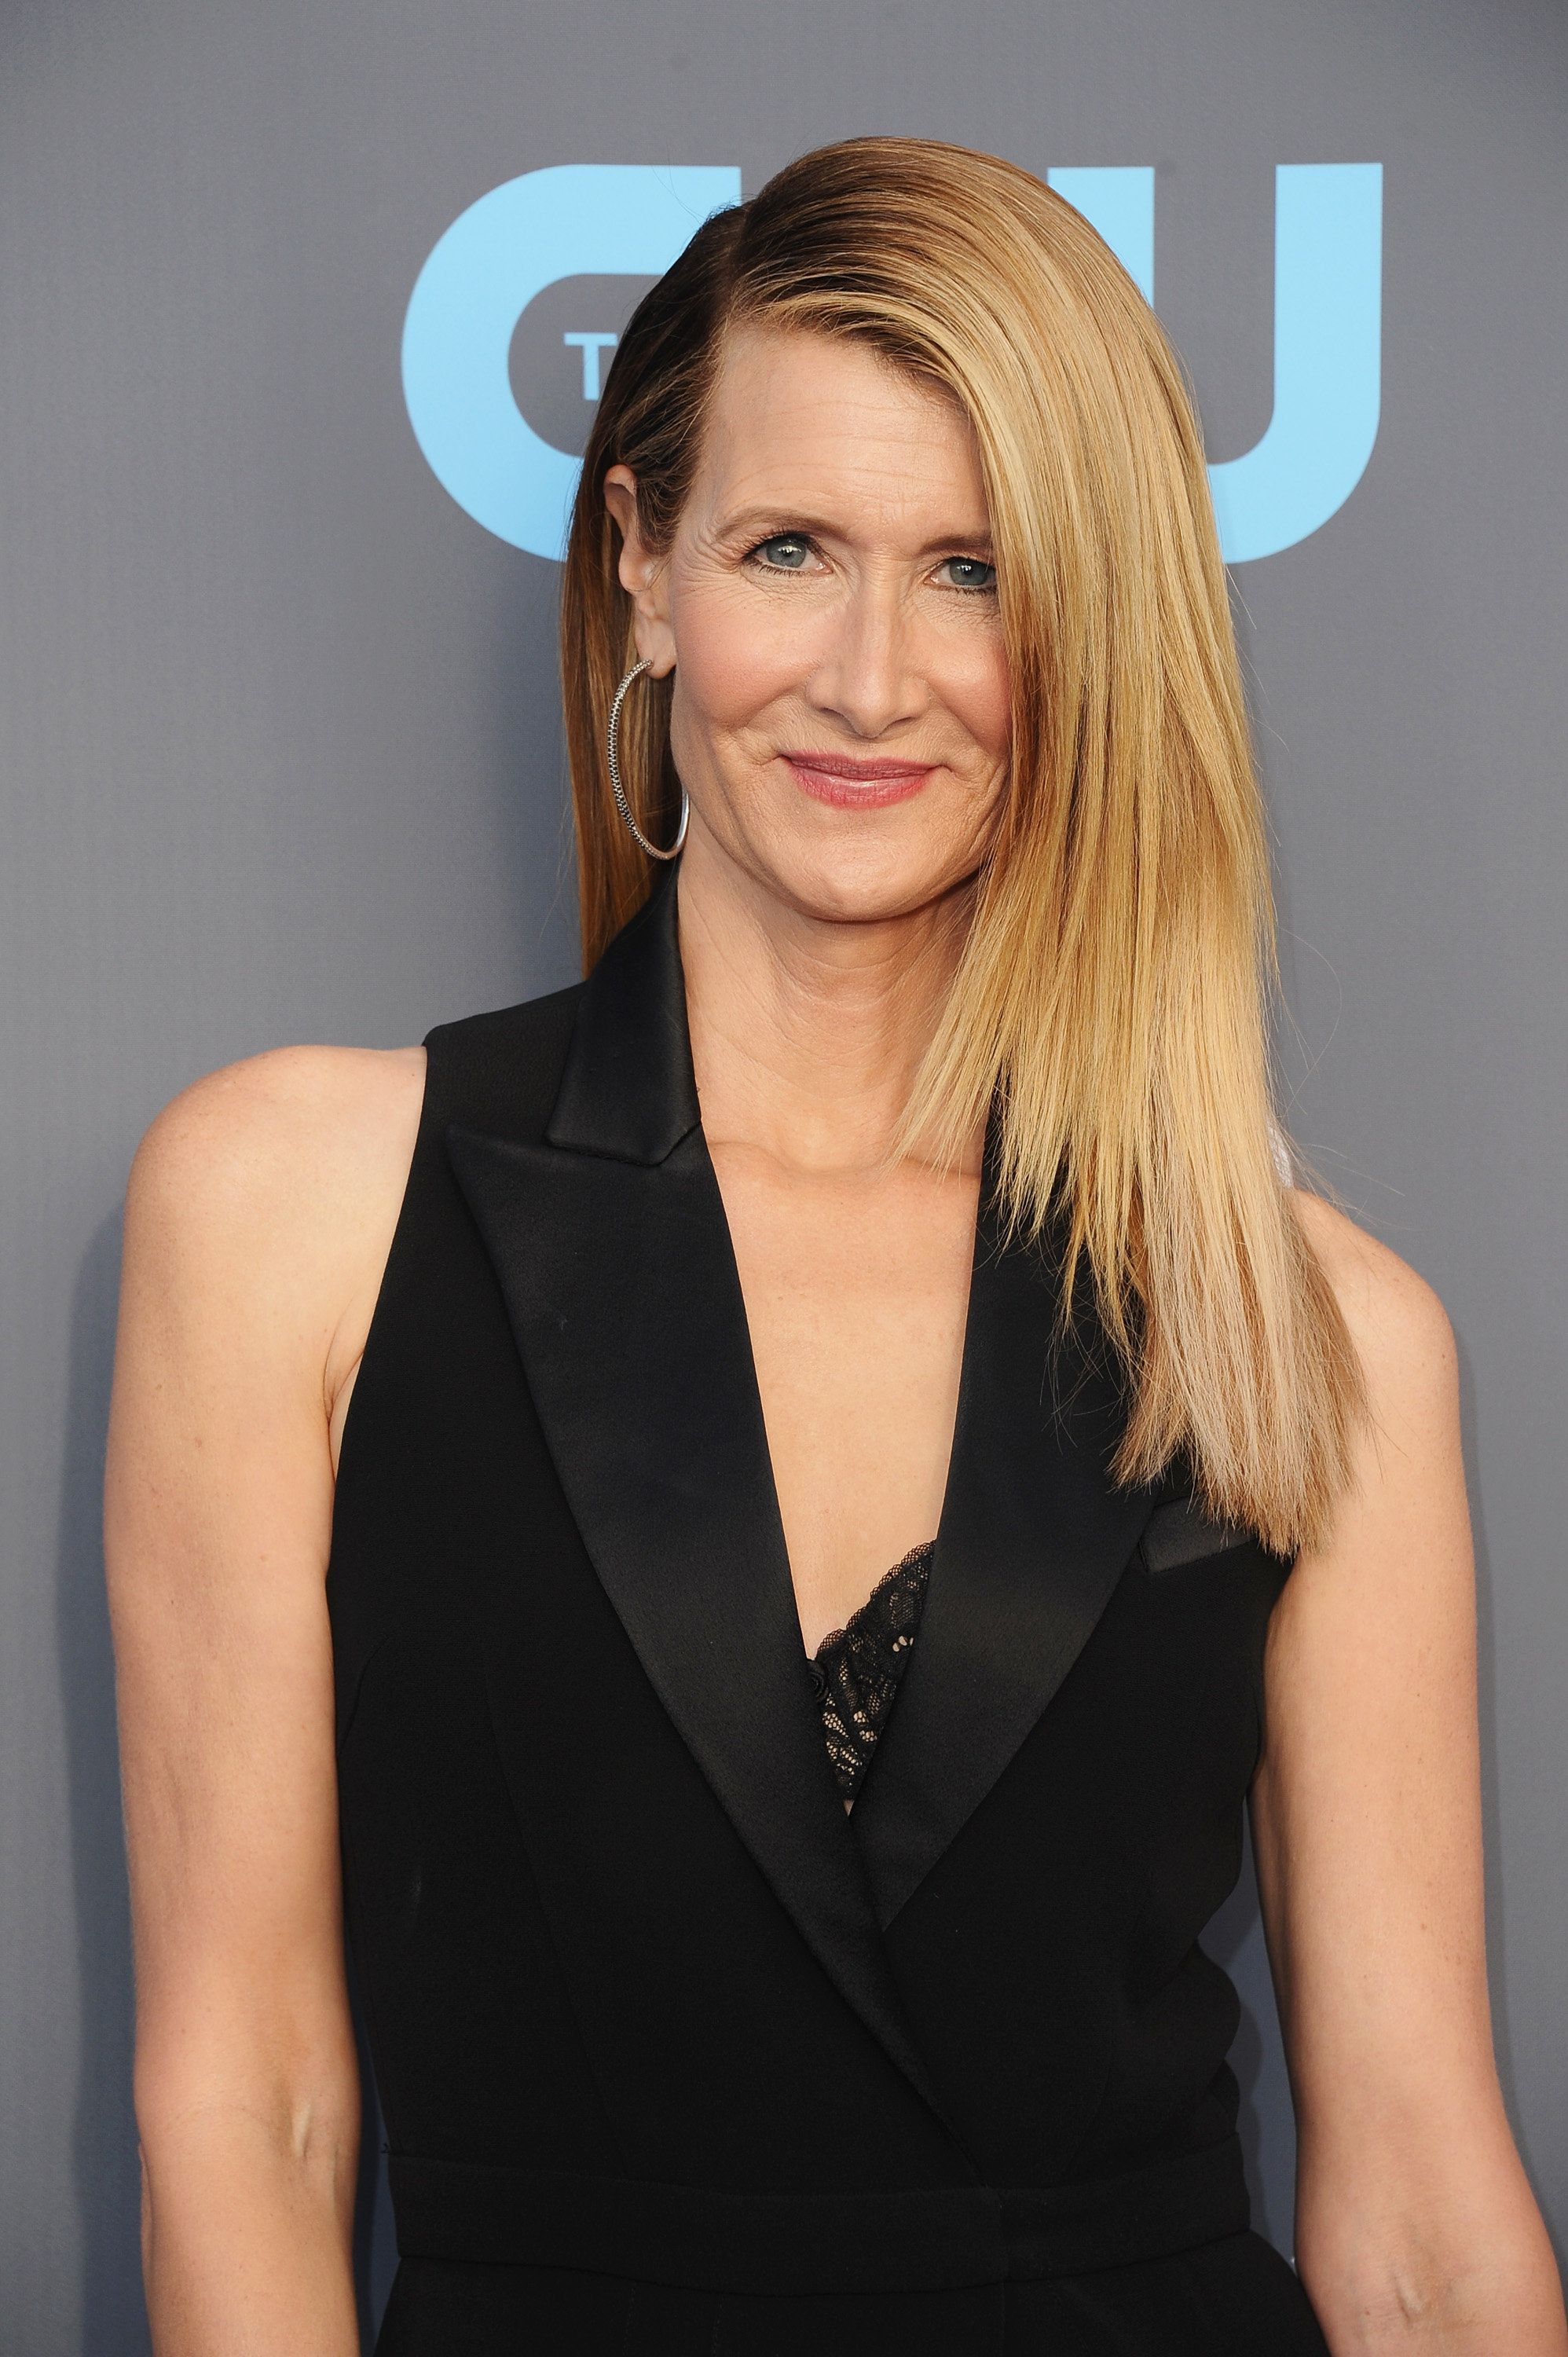 SANTA MONICA, CA - JANUARY 11:  Actor Laura Dern attends The 23rd Annual Critics' Choice Awards at Barker Hangar on January 11, 2018 in Santa Monica, California.  (Photo by Jon Kopaloff/FilmMagic)